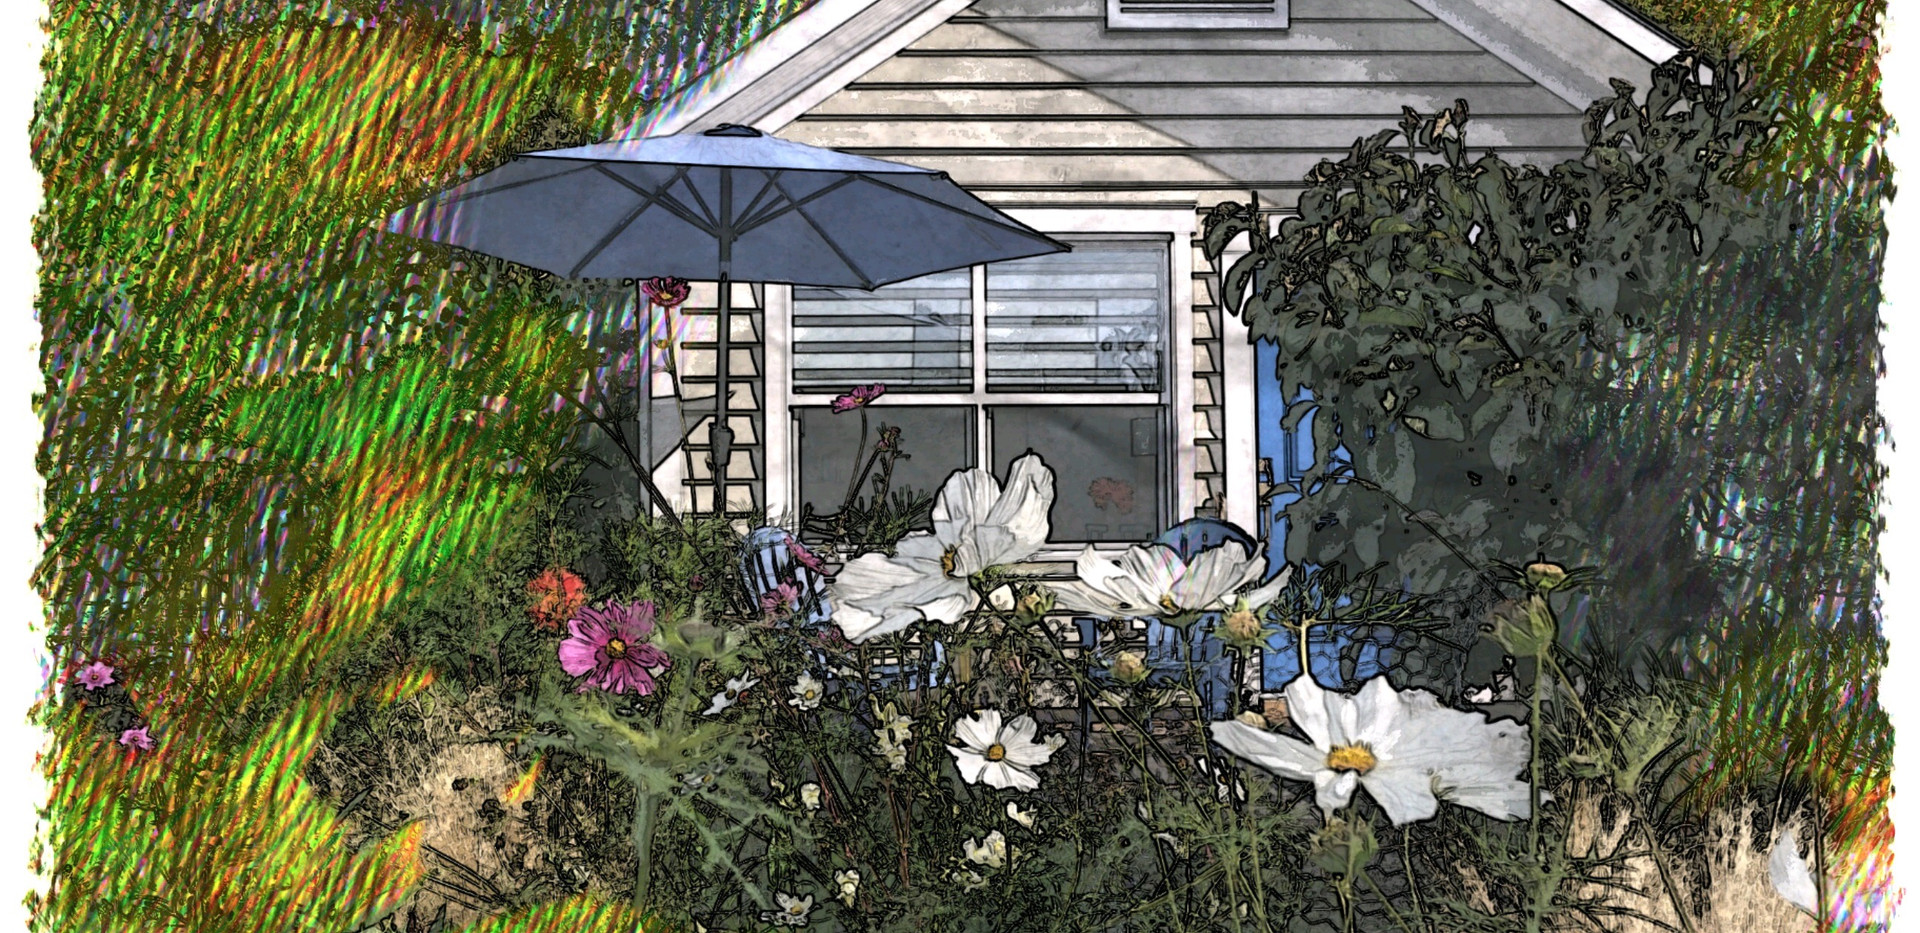 Artist rendition of The Small House at Belle Maison Auprès De La Mer B&B